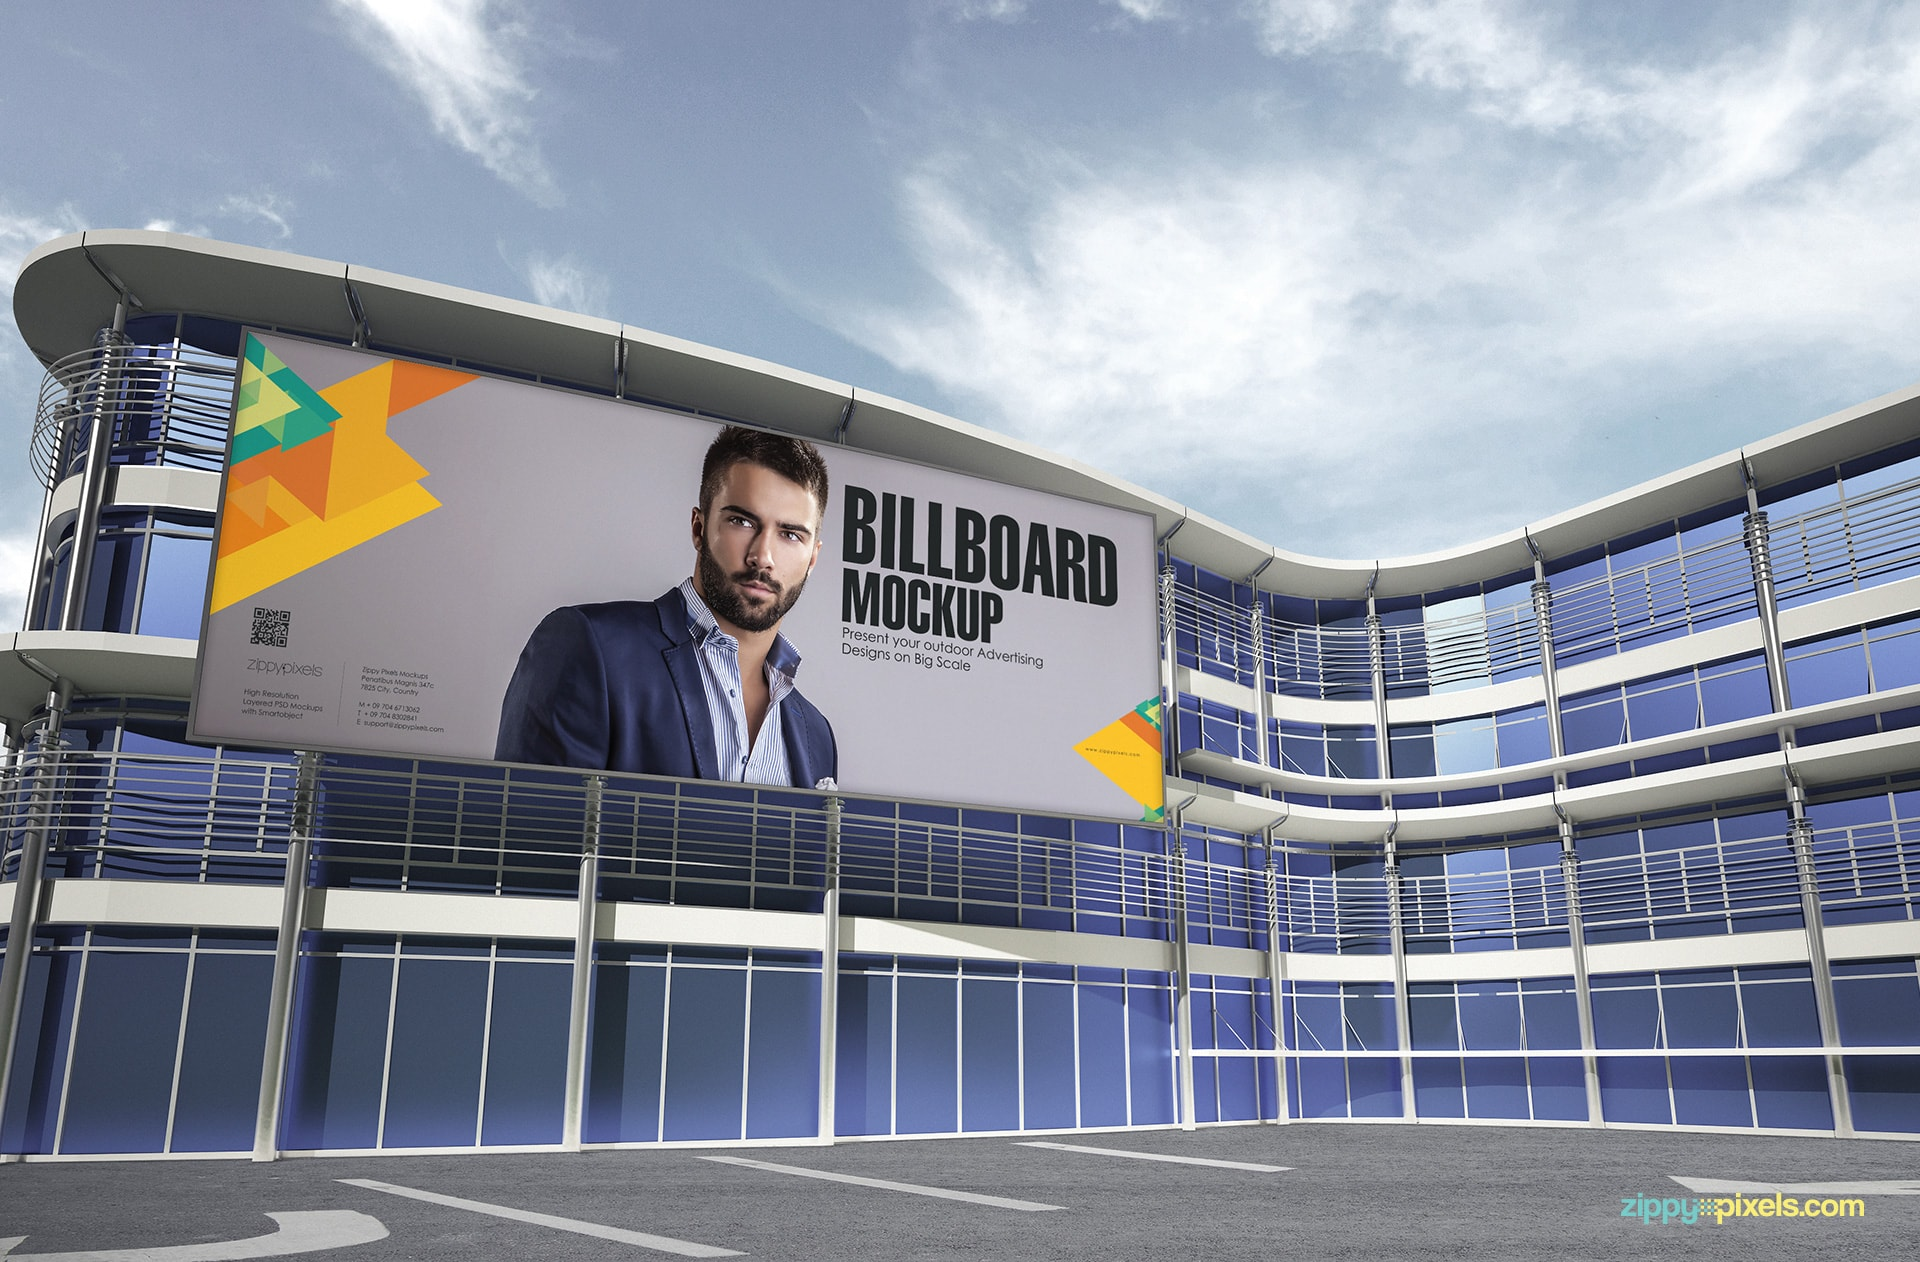 Outdoor Advertising Mockup - Billboard on the glass building at day time